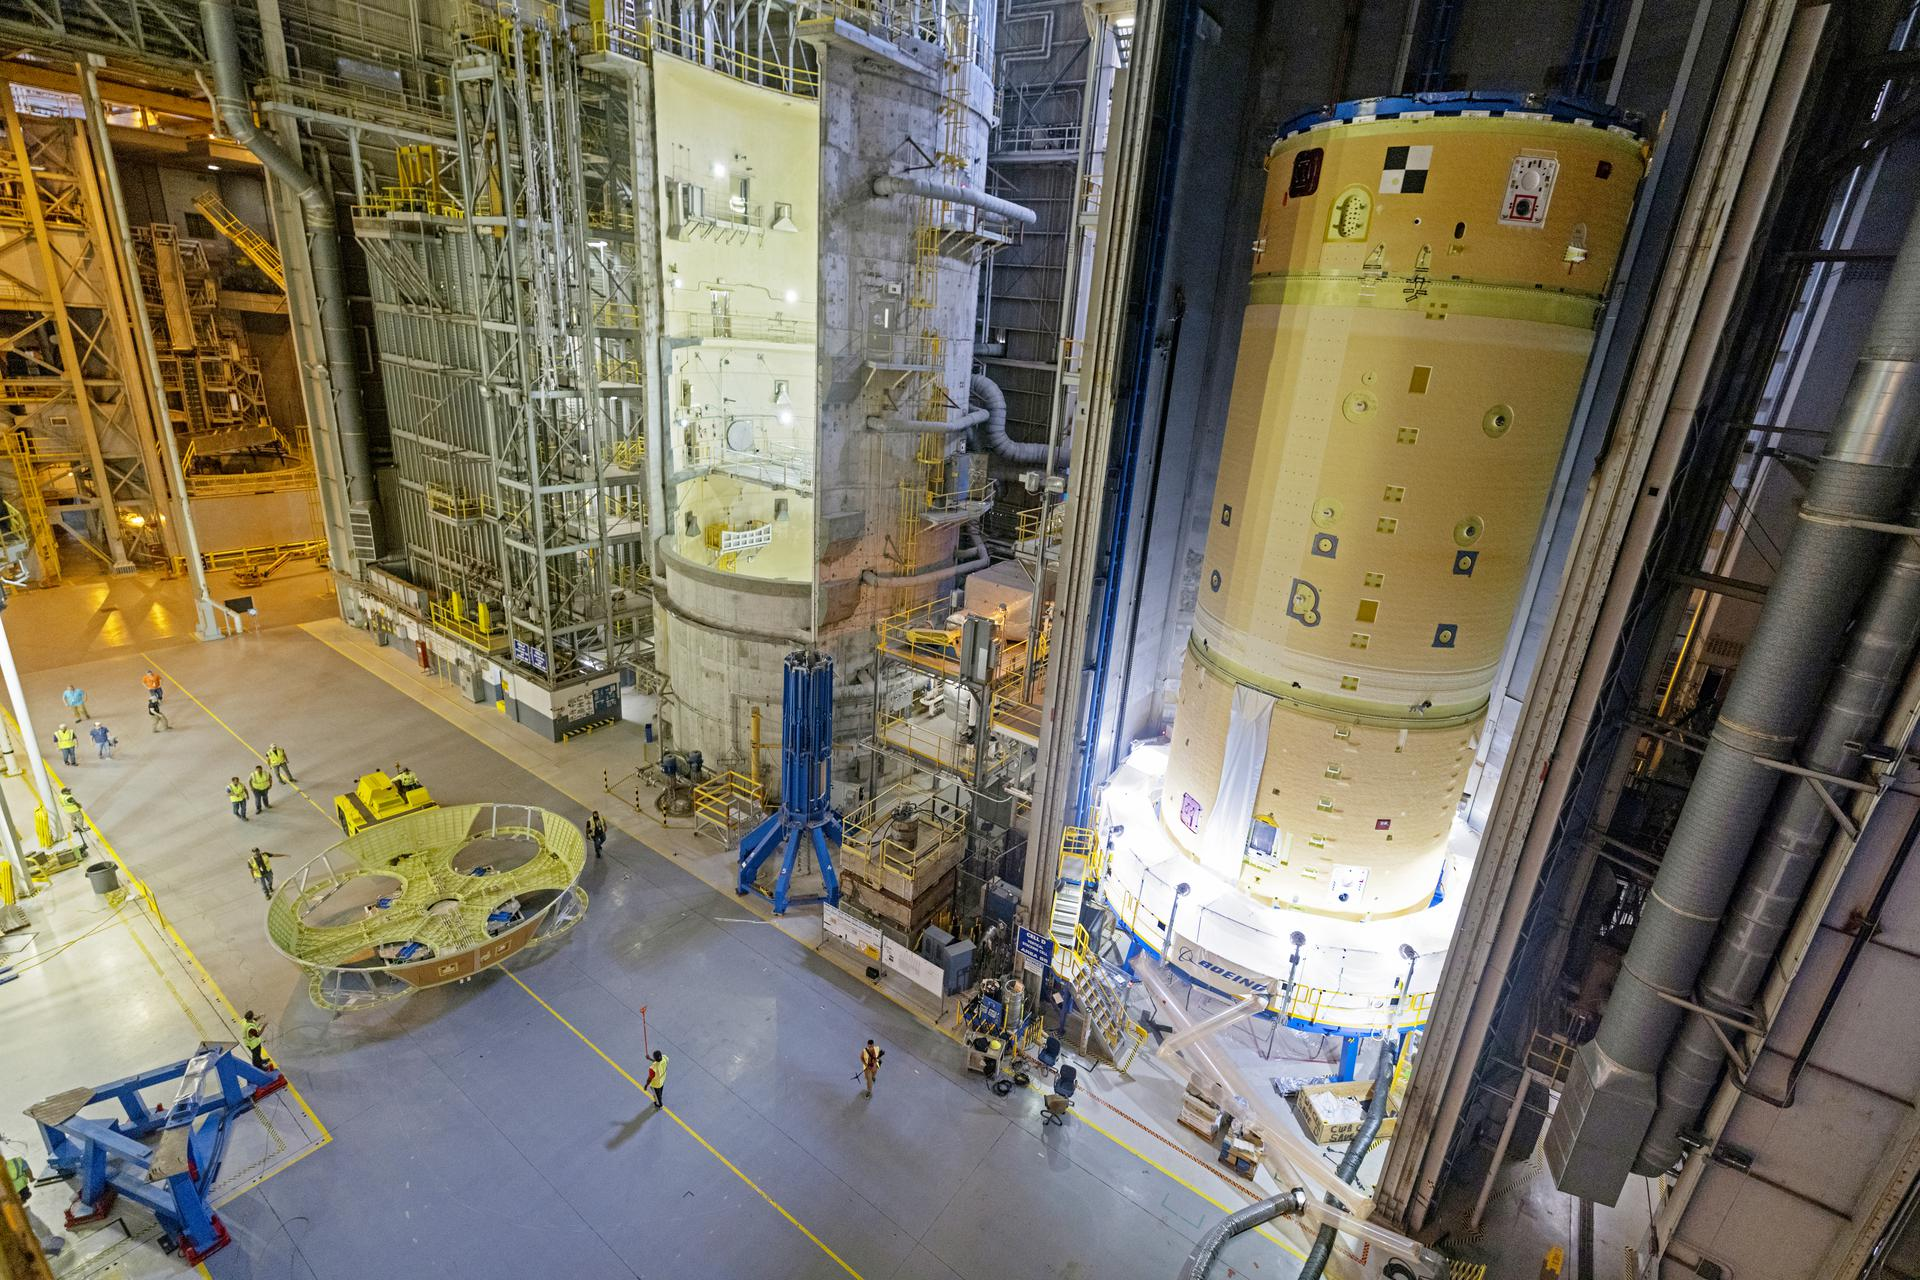 Boeing working on multiple Cores, first EUS hardware for Artemis missions 2-4